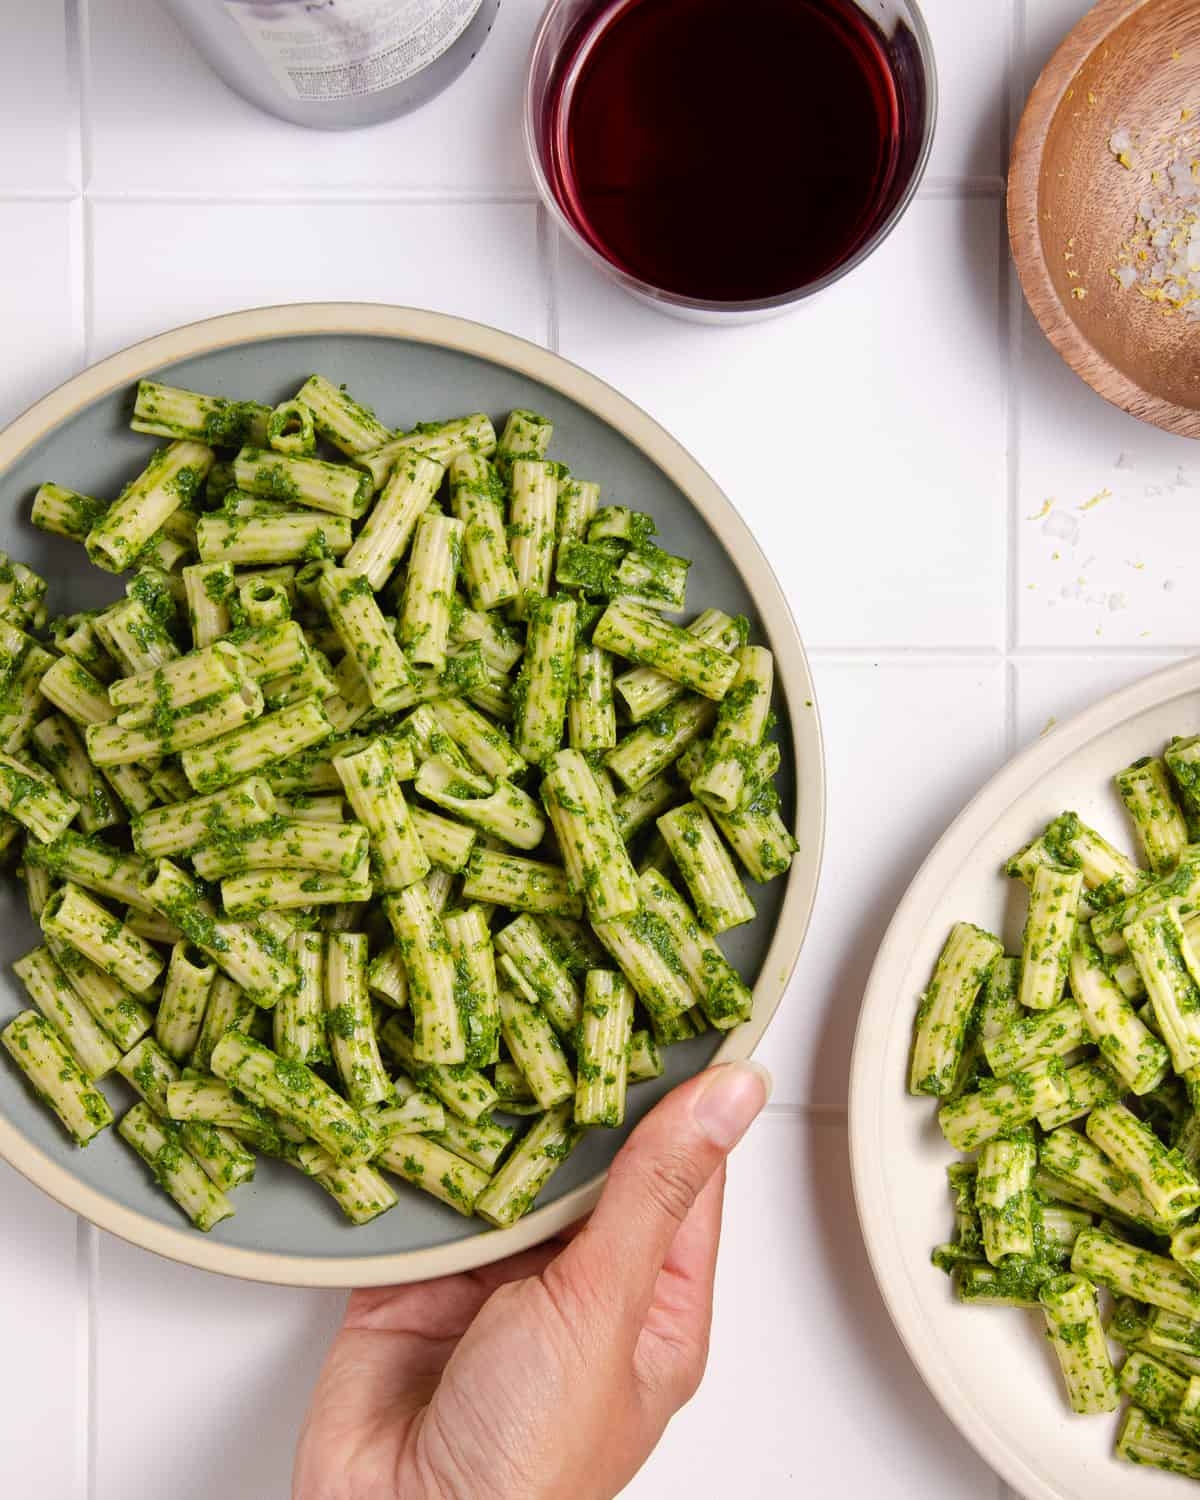 A hand picking up a plate of pasta with green sauce.